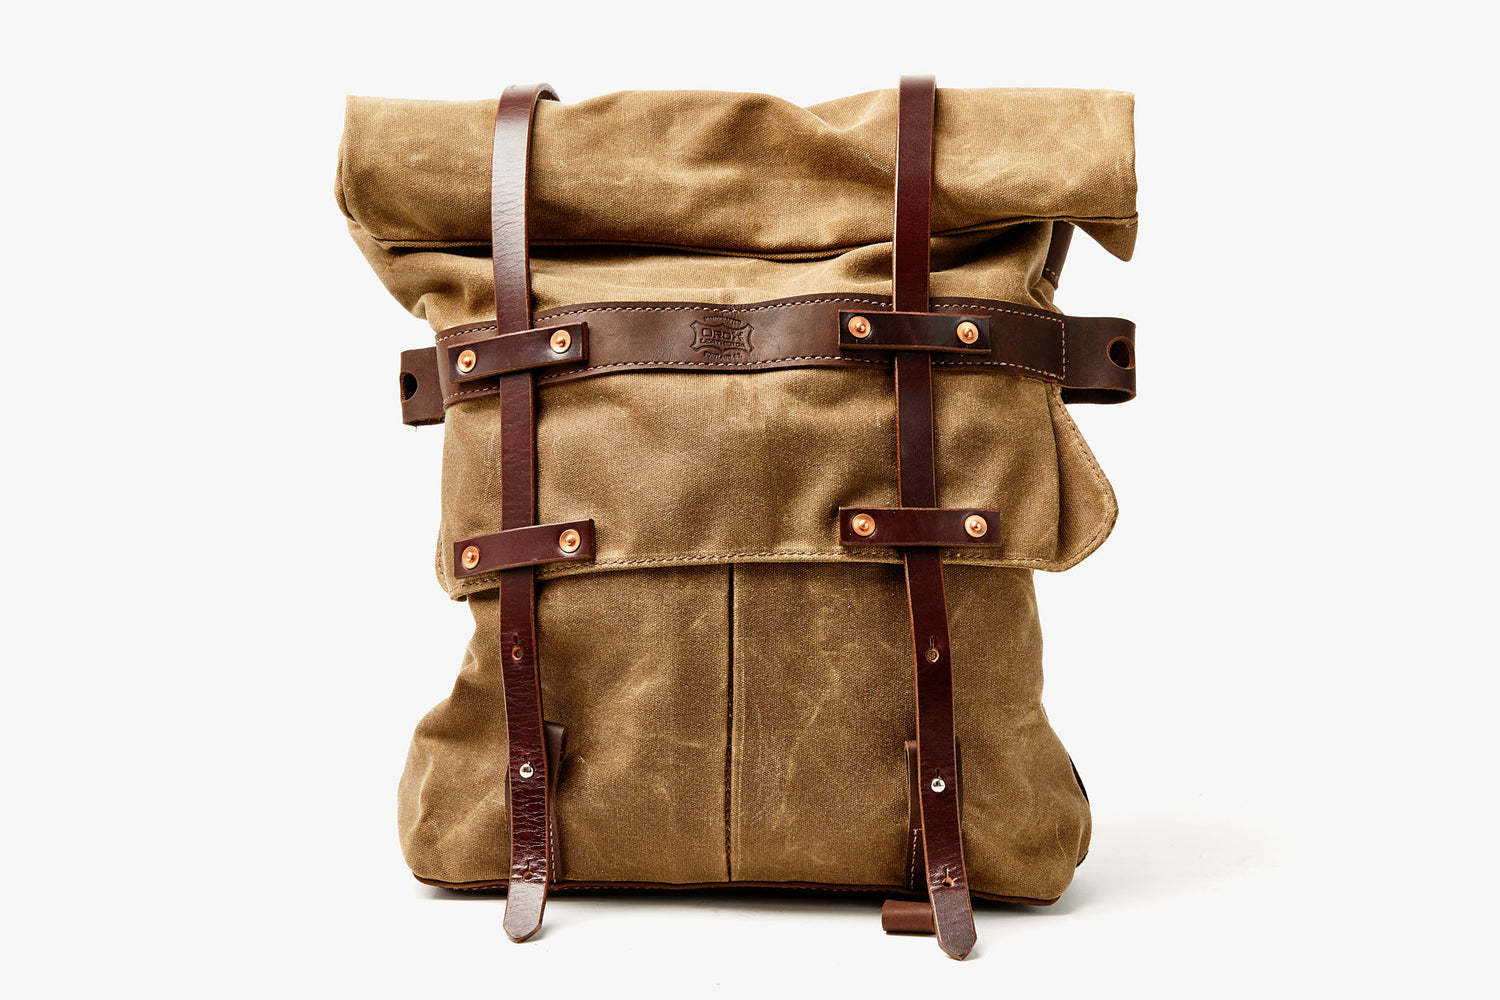 Orox Leather Co. Parva Rucksack - Brown - front view of bag standing up